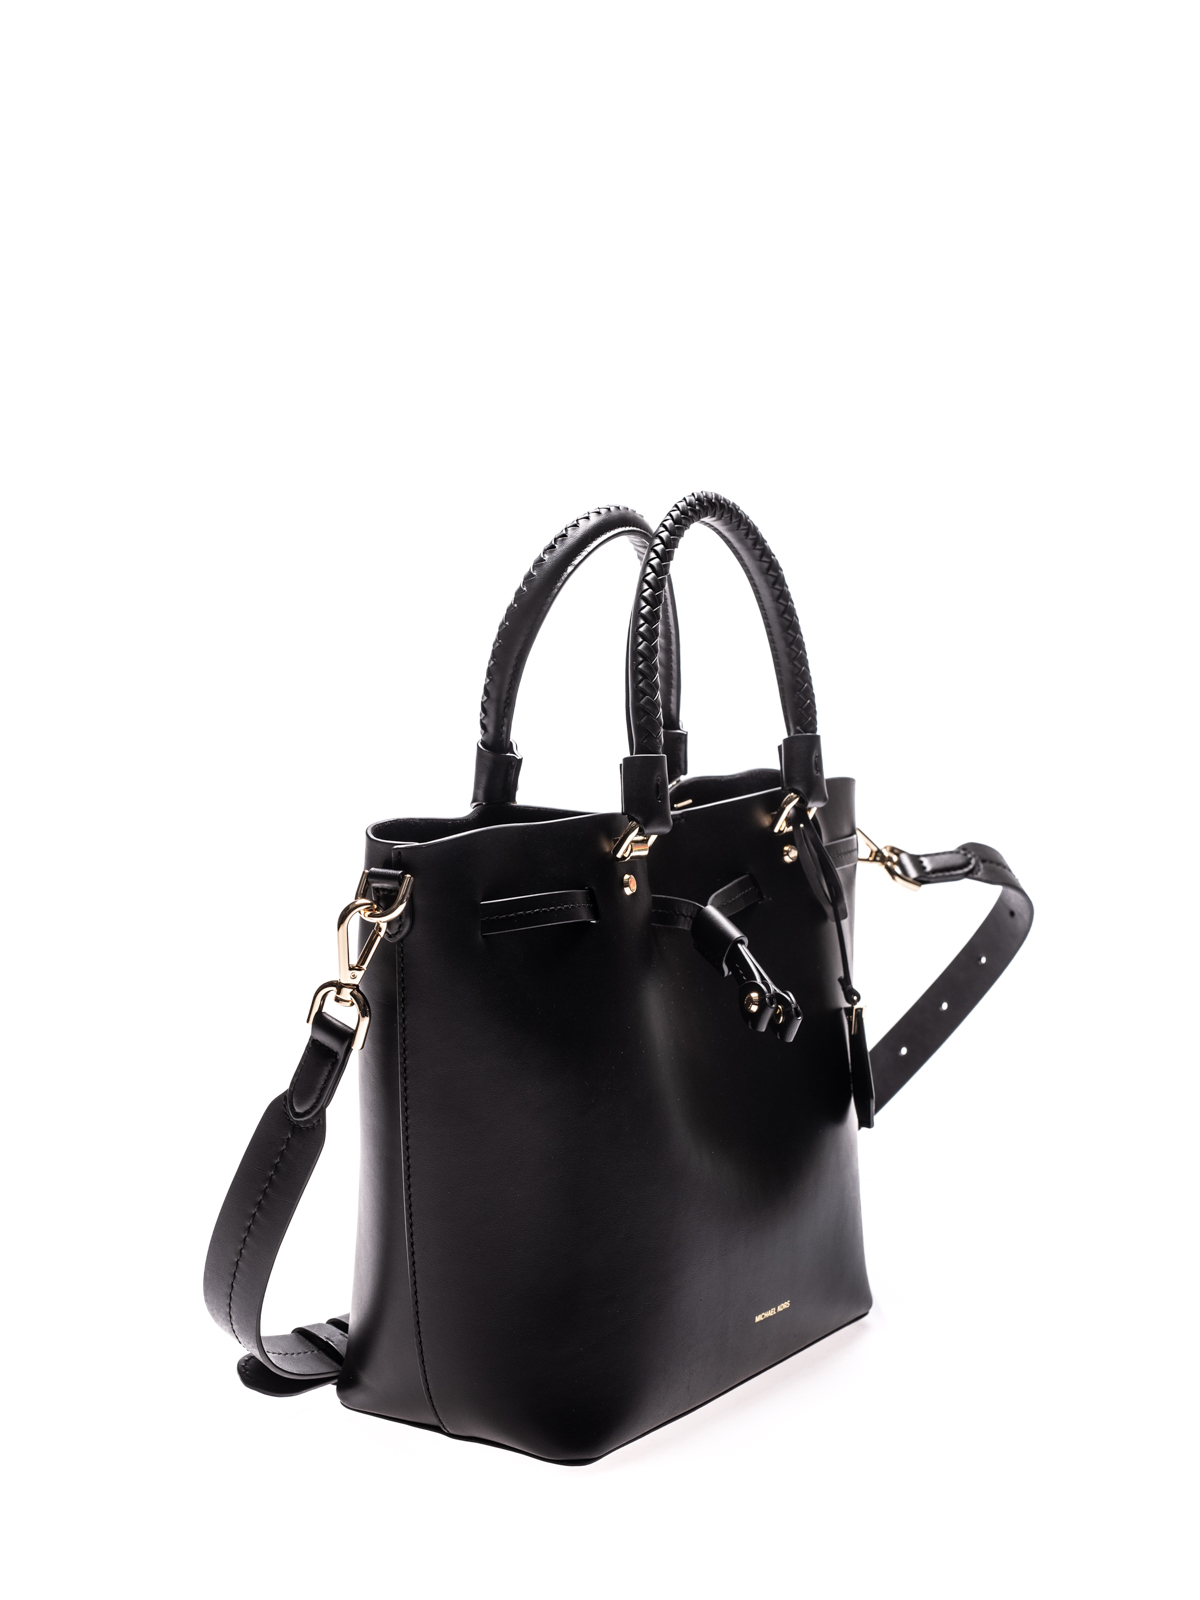 aef99f176253 MICHAEL KORS: Bucket bags online - Blakely black medium bucket bag